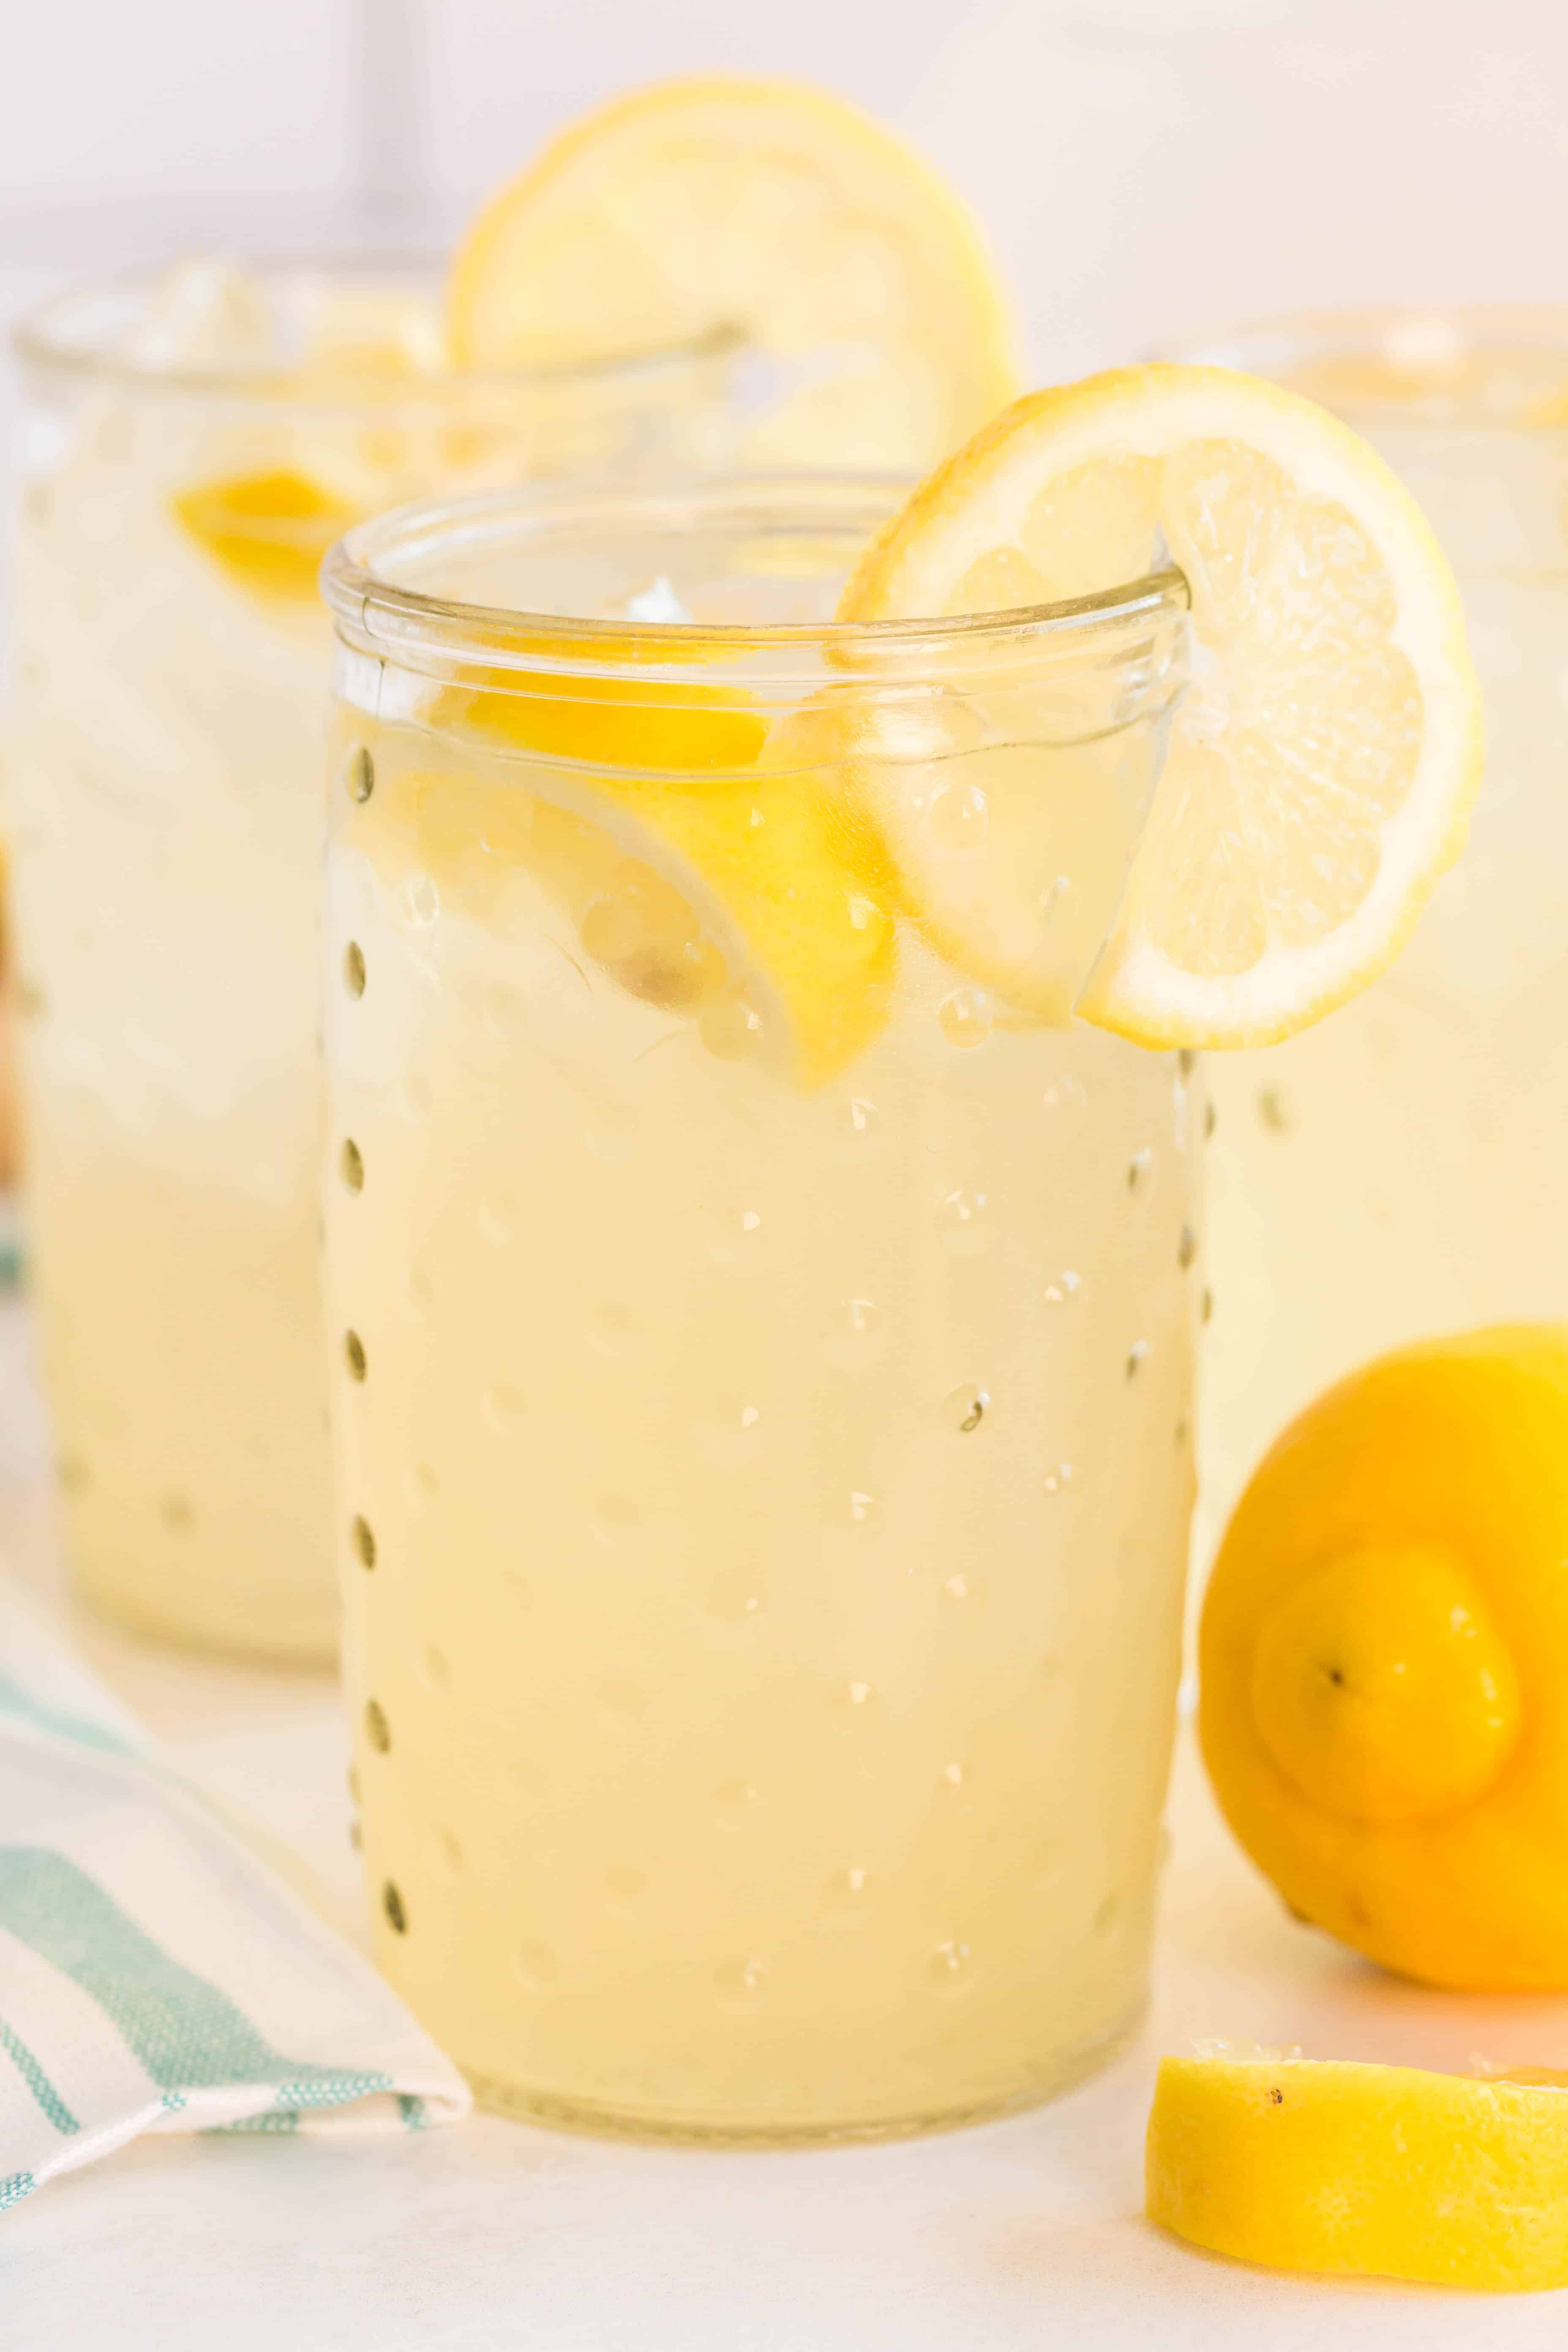 Homemade Lemonade is a refreshing summer drink recipe that is bursting with lemon flavor and sweetened to your likeness. Perfect for a hot summer day!